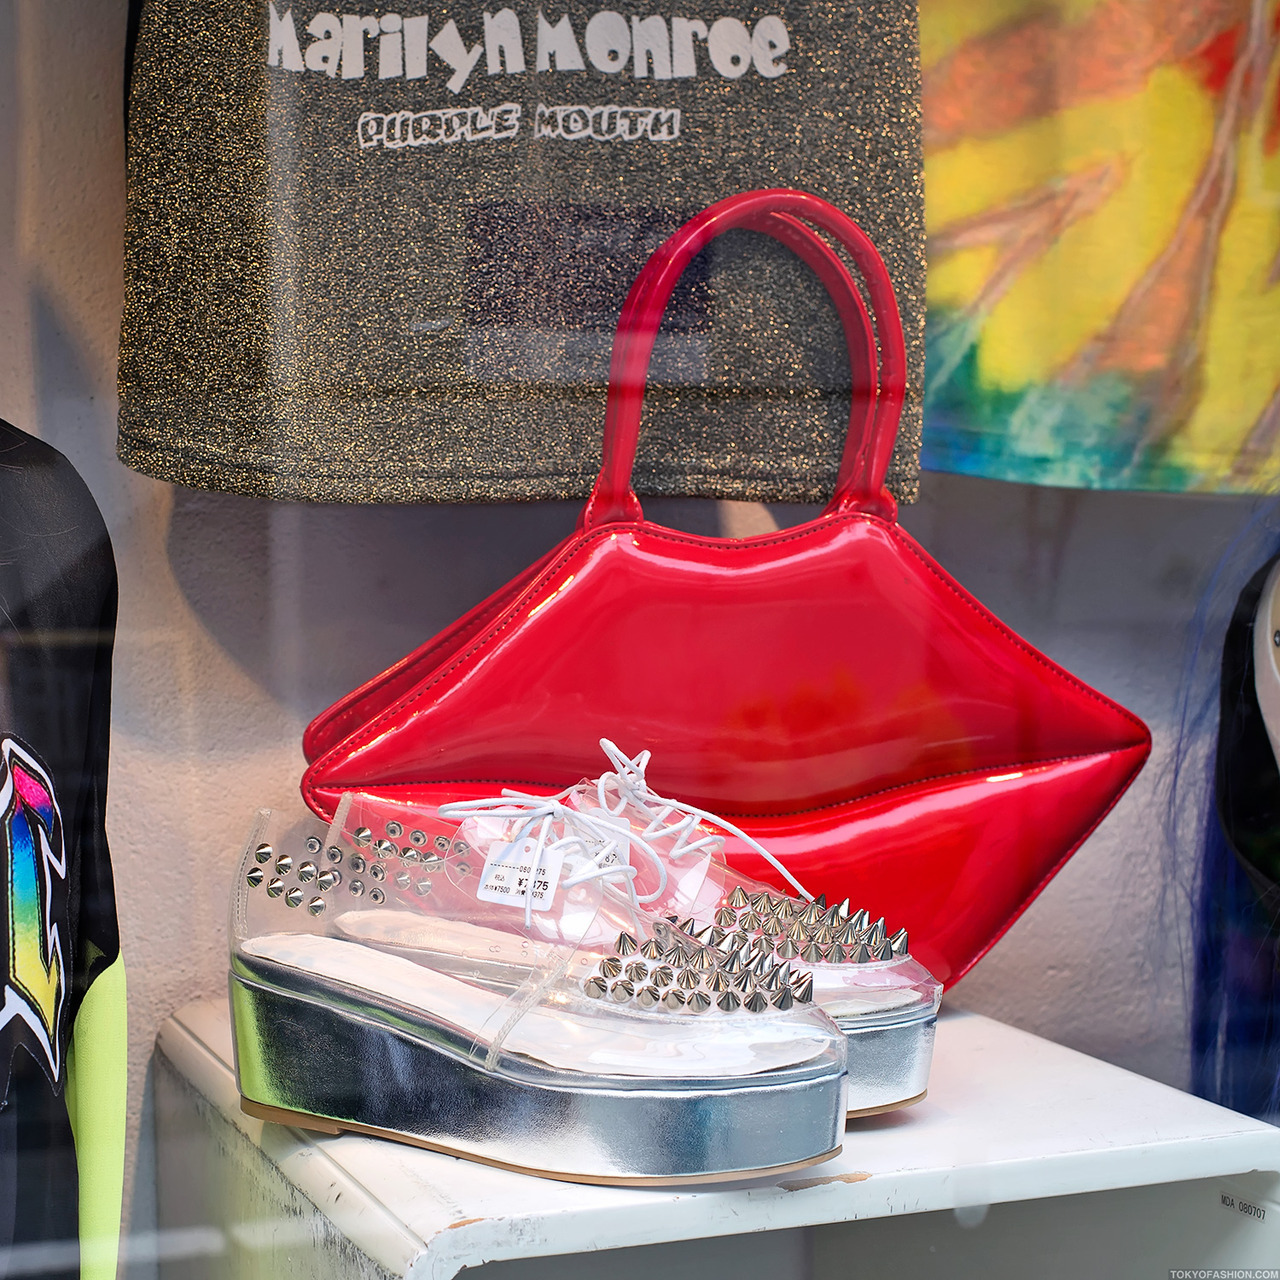 Clear studded platform shoes & lip-shaped handbag at a shop in Harajuku.